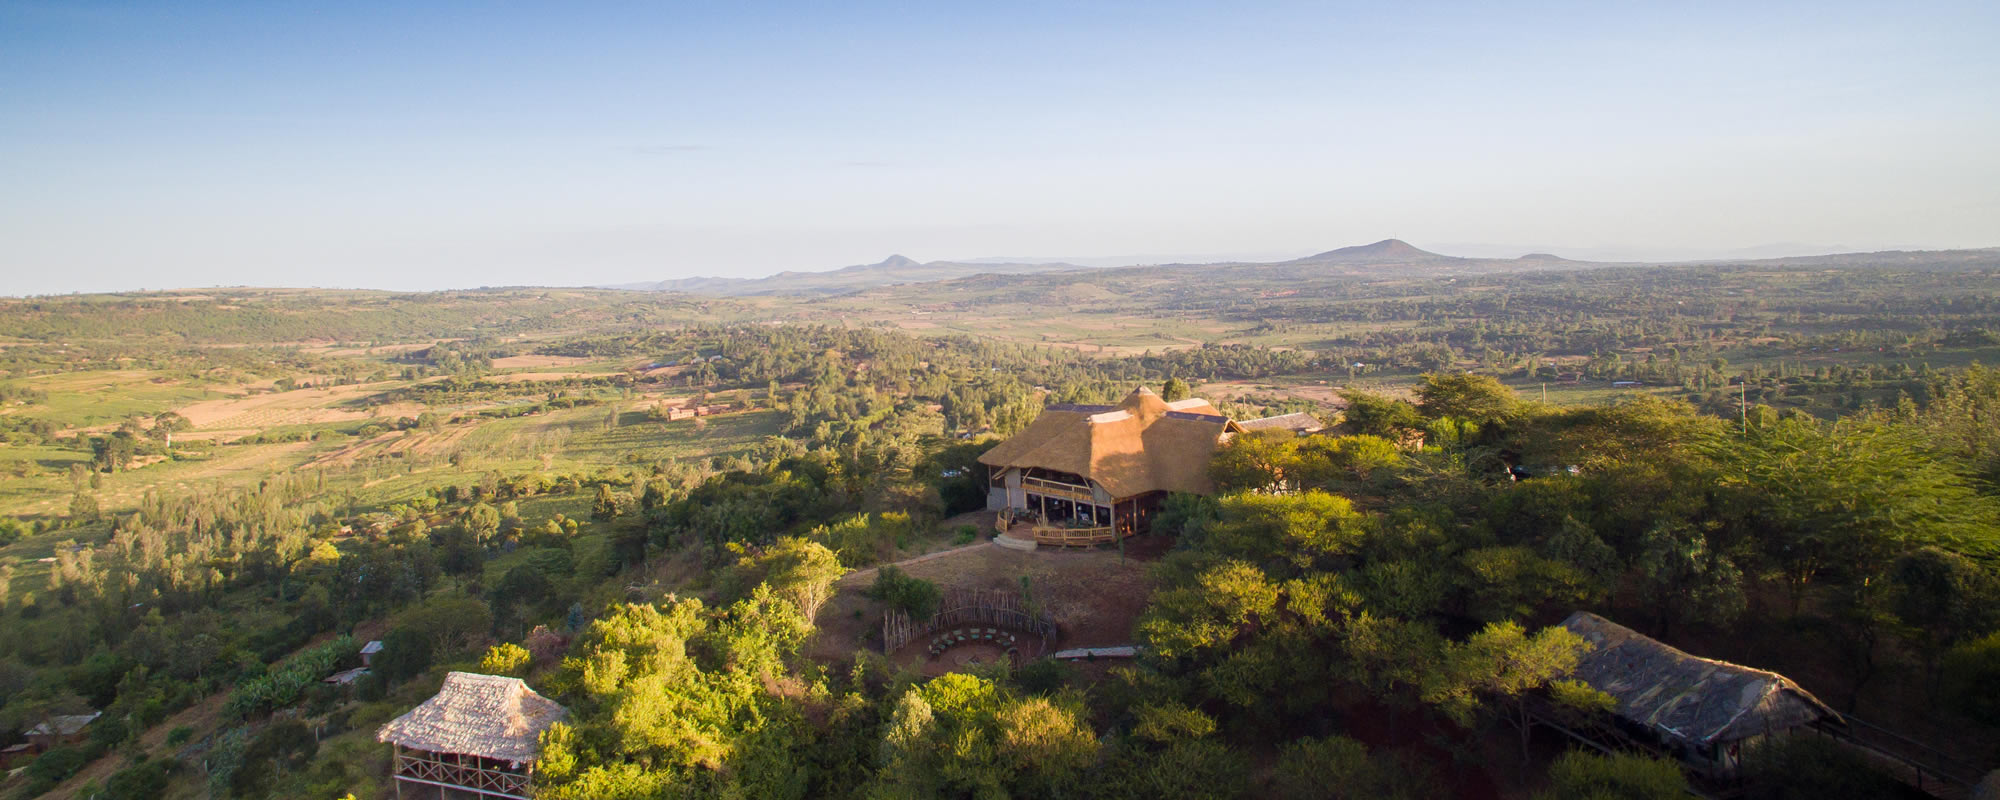 Ngorongoro Forest Tented Lodge2